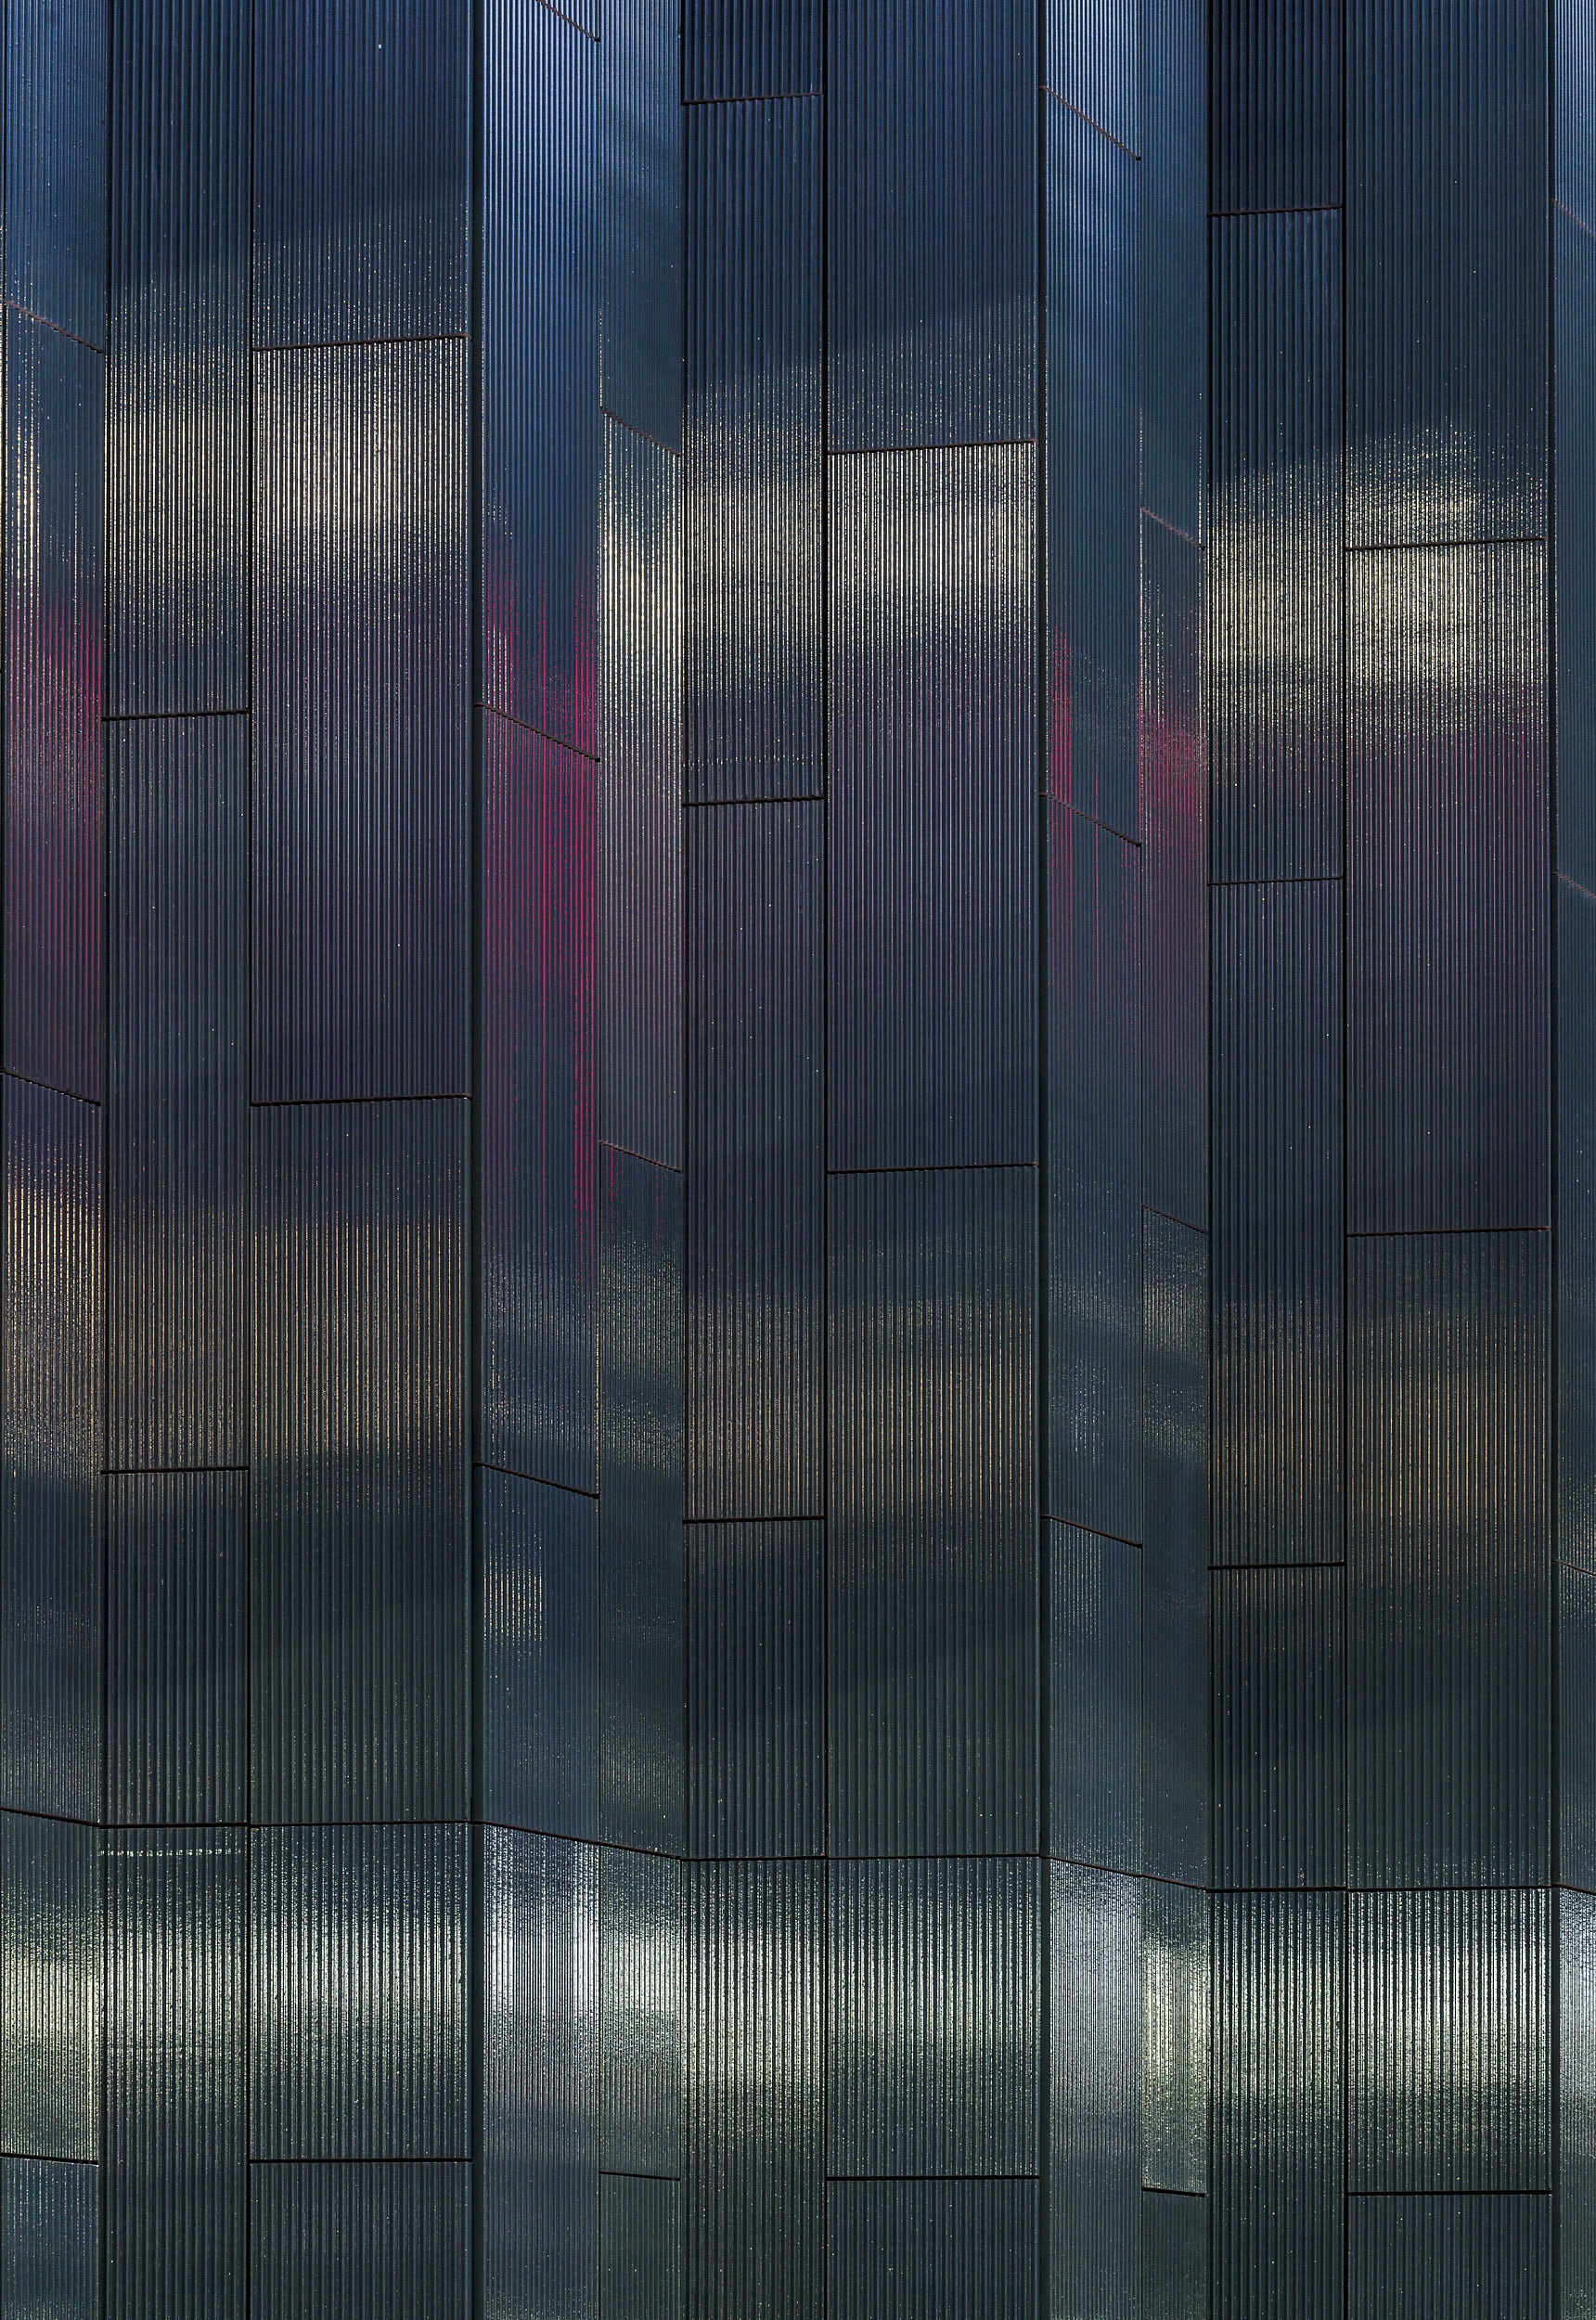 Architectural detail image that shows the cladding at night.